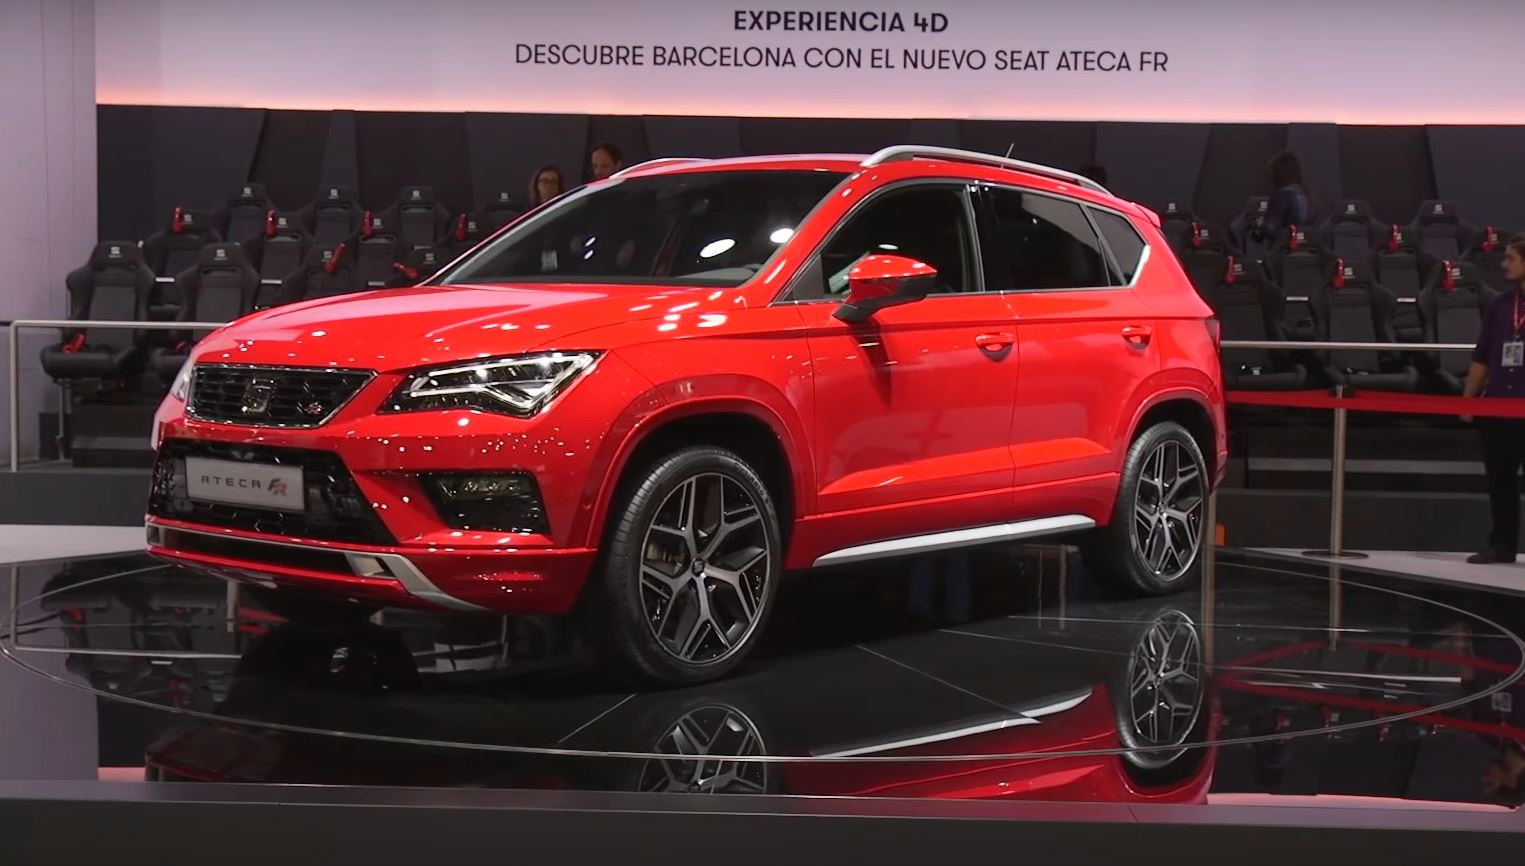 2018 seat ateca fr 50 images hd car wallpaper. Black Bedroom Furniture Sets. Home Design Ideas